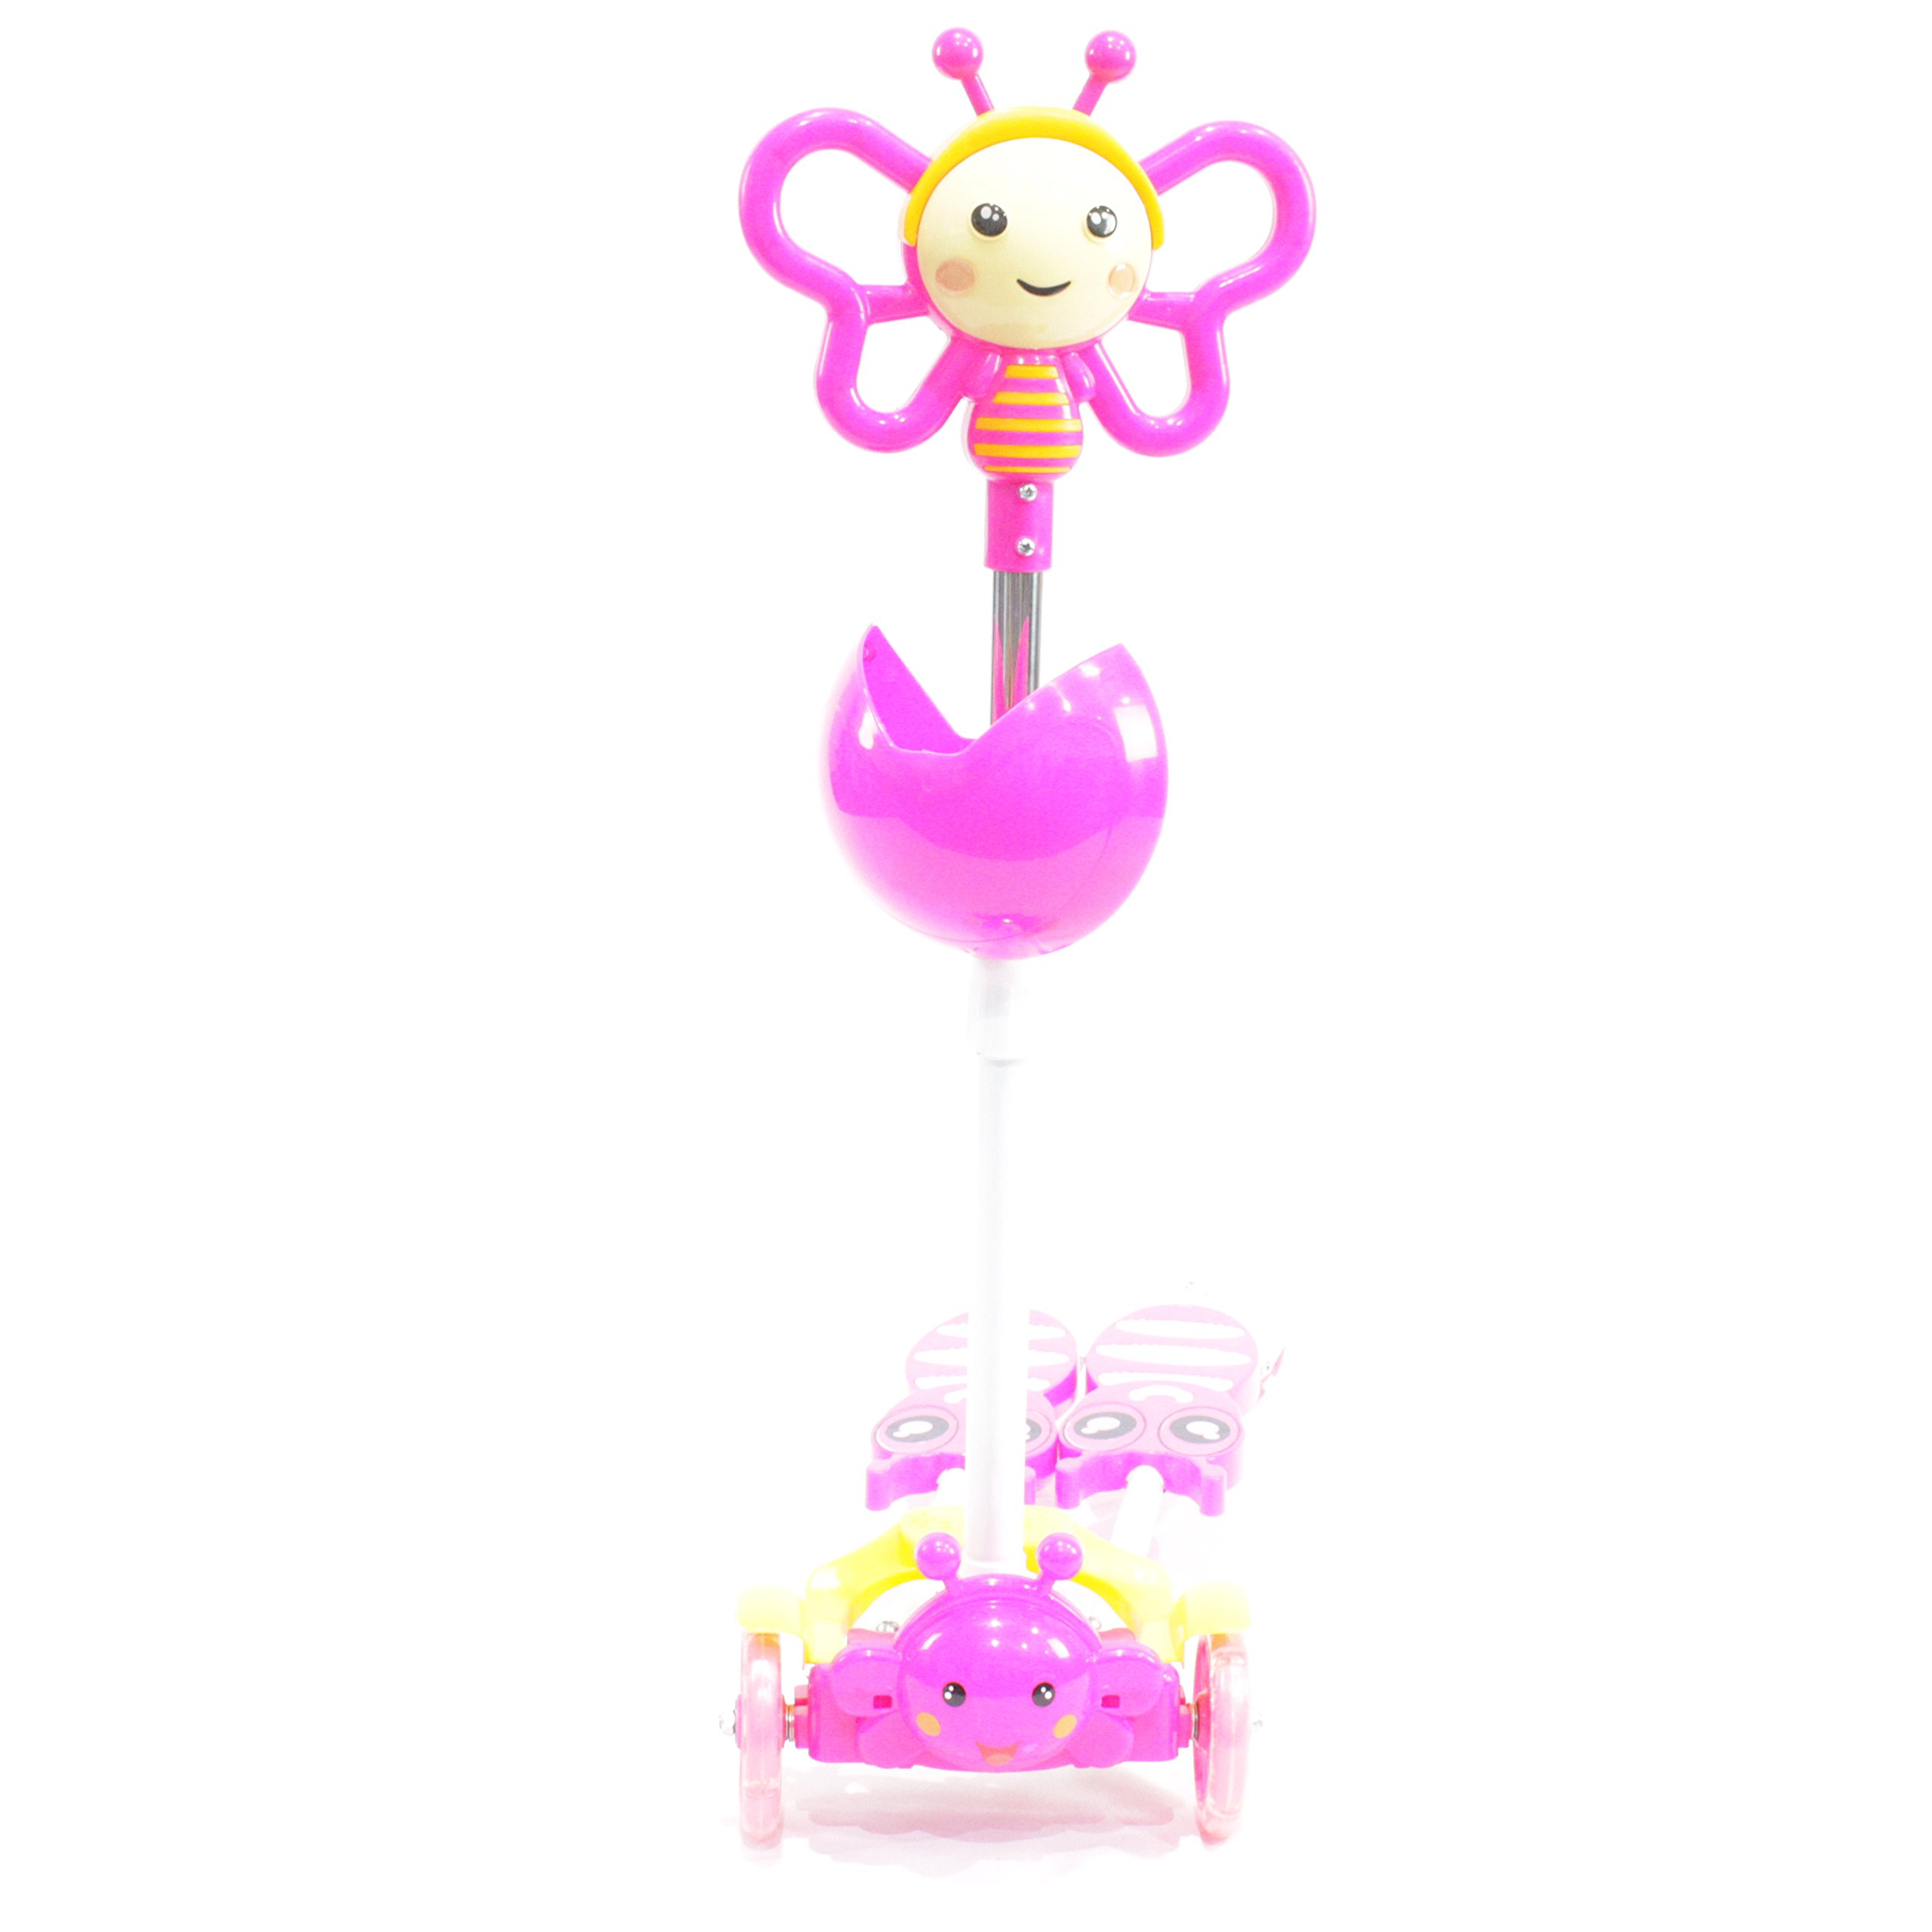 Kids 4 Wheels Scooter Kick Scooter-Bee Design-Pink Color by Toytexx